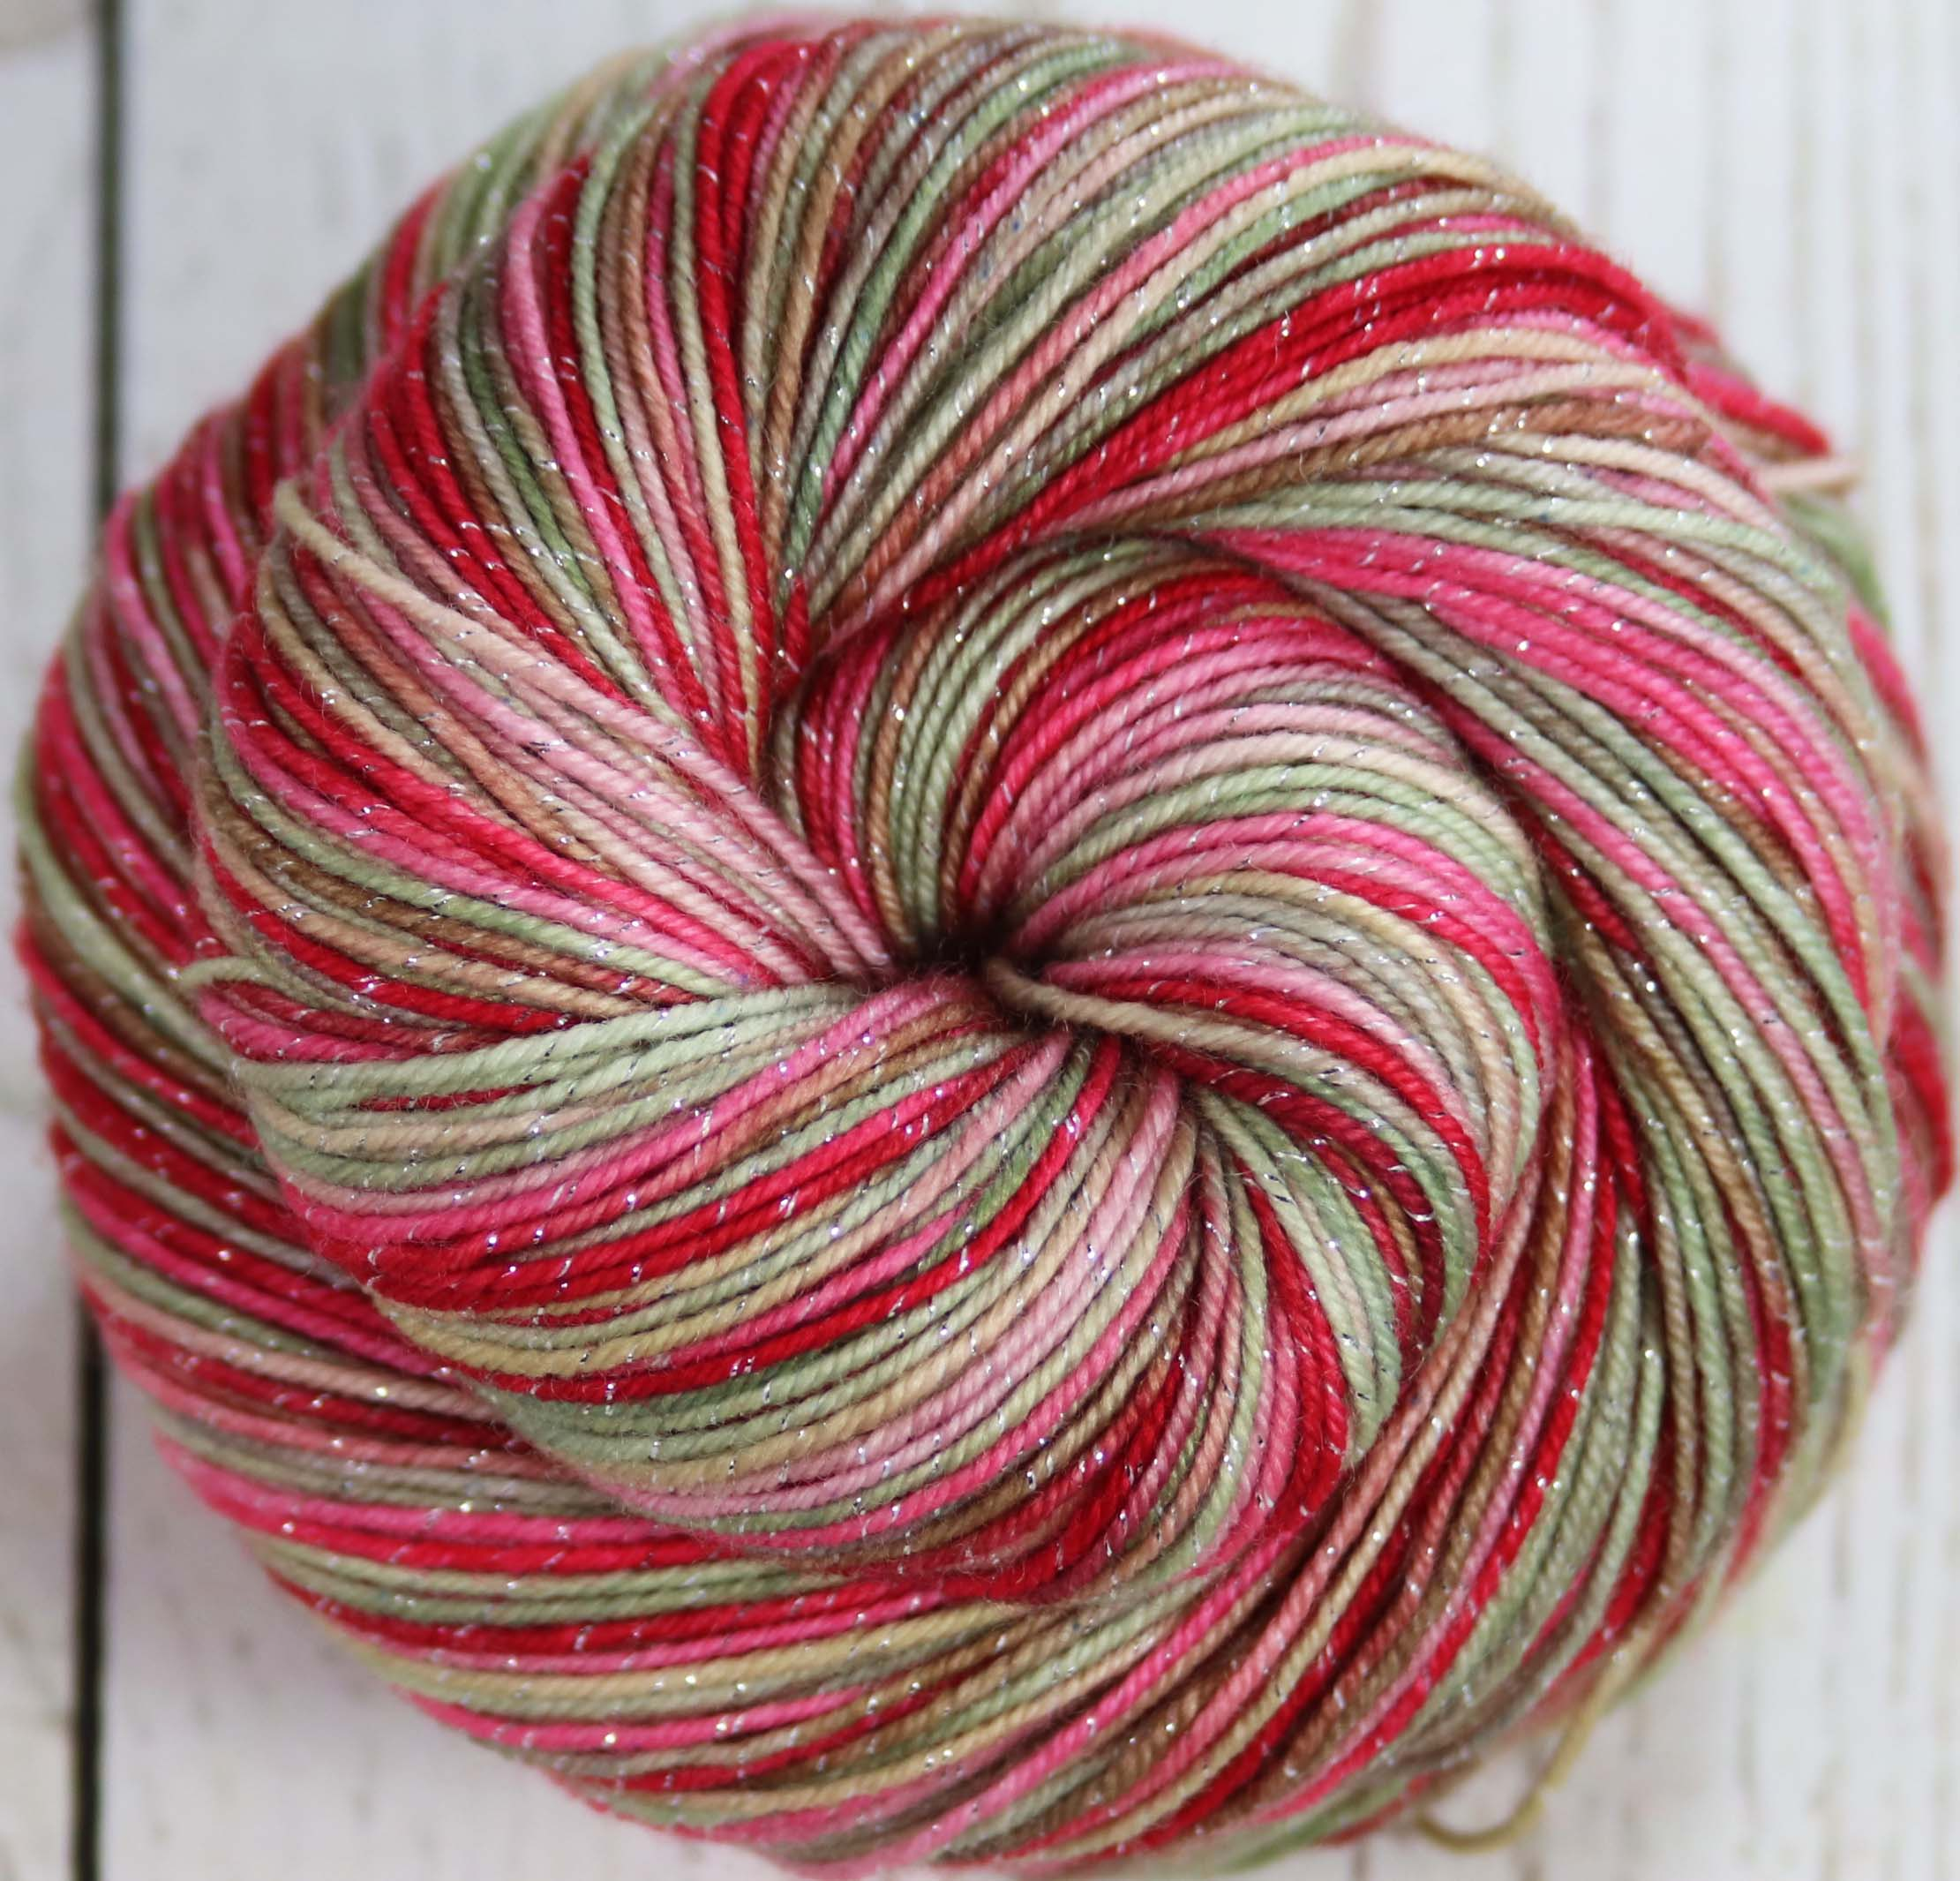 ELEGANT PANEL : SW Merino-Lurex Sock Yarn - Hand dyed variegated sock yarn - Masters Collection